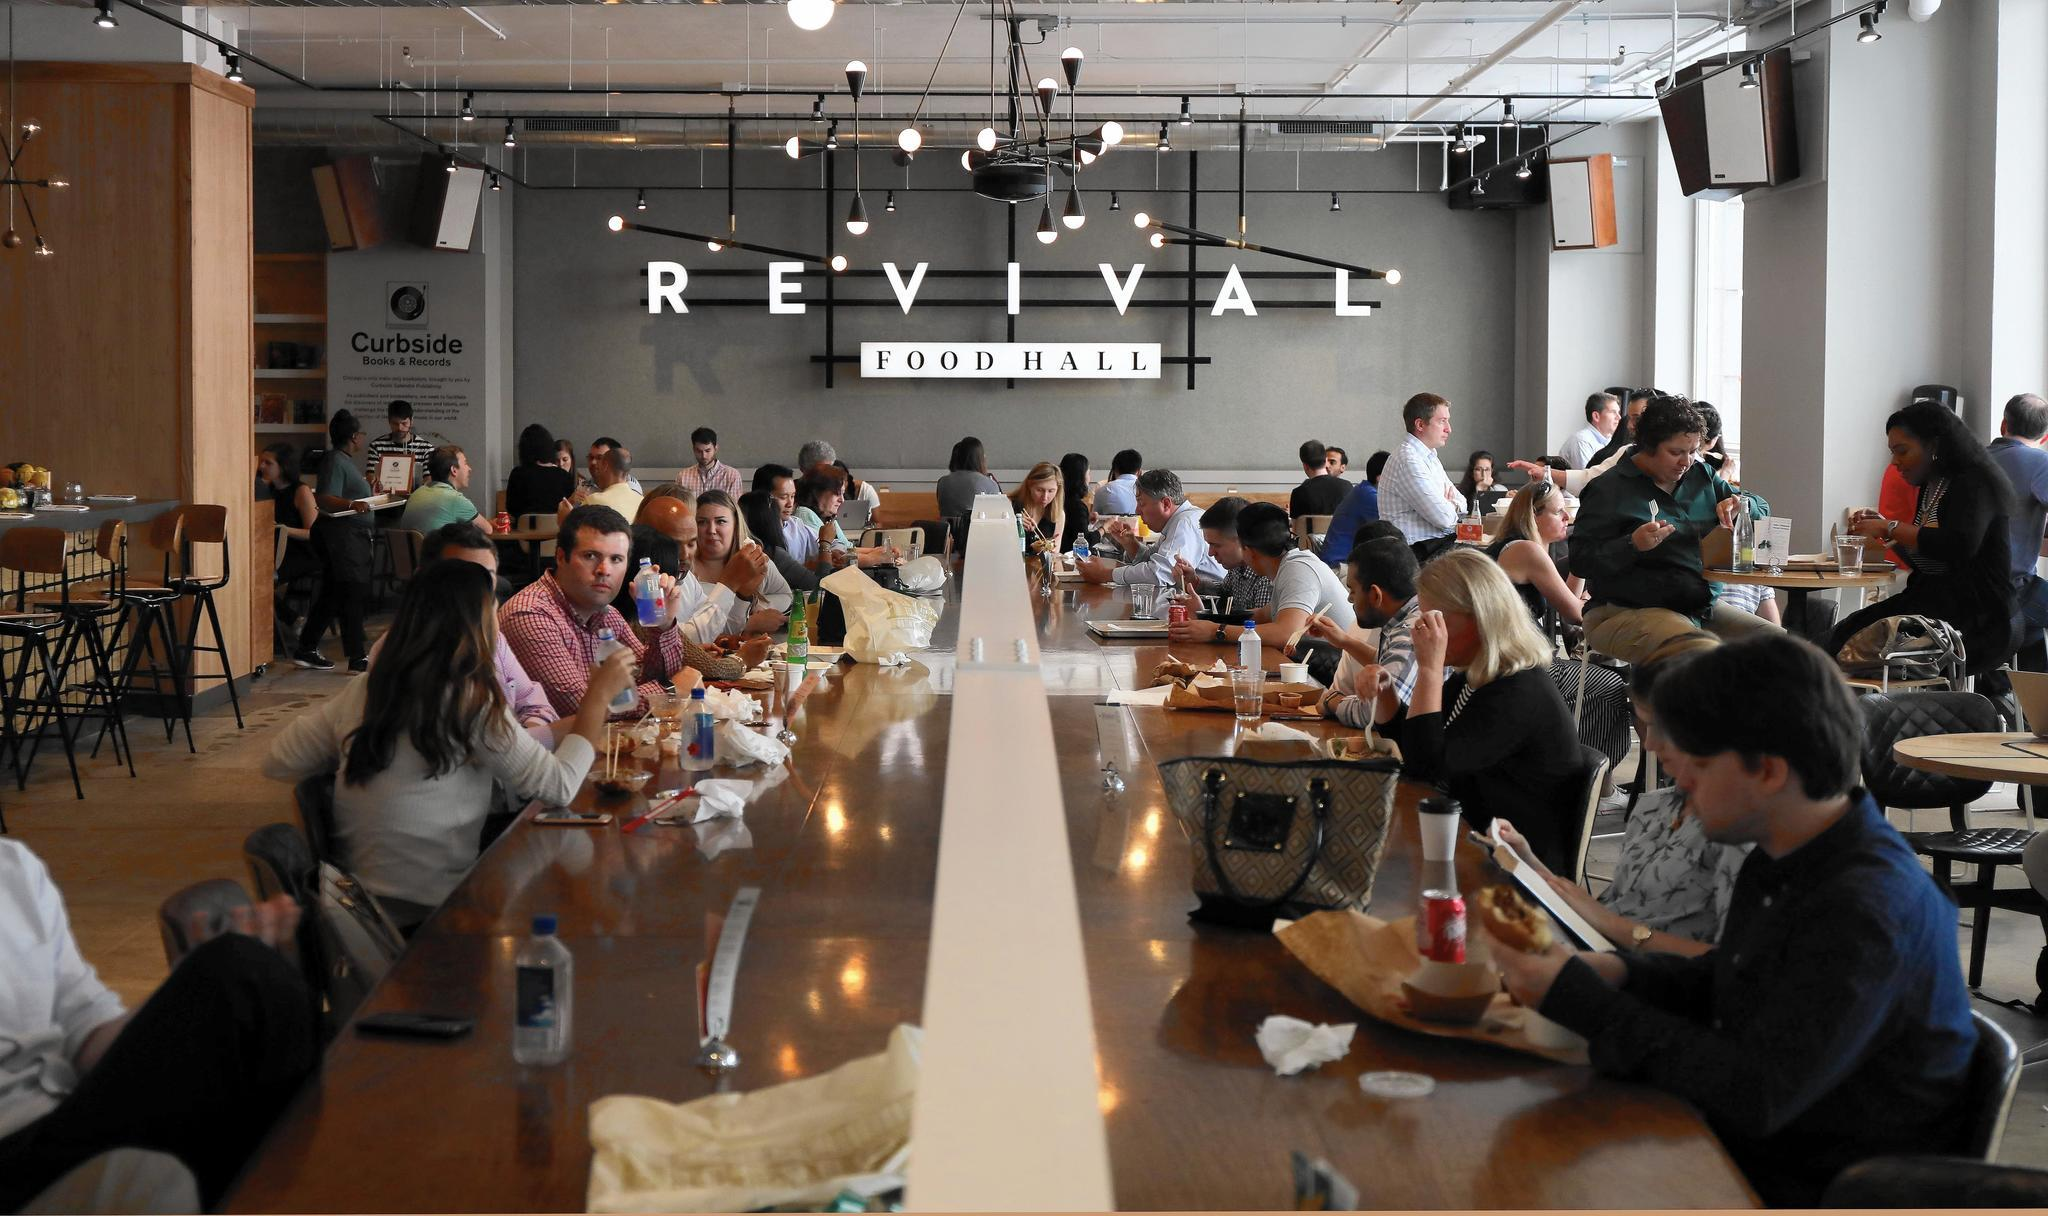 The modern food court: Food halls to grow sharply in Chicago ...